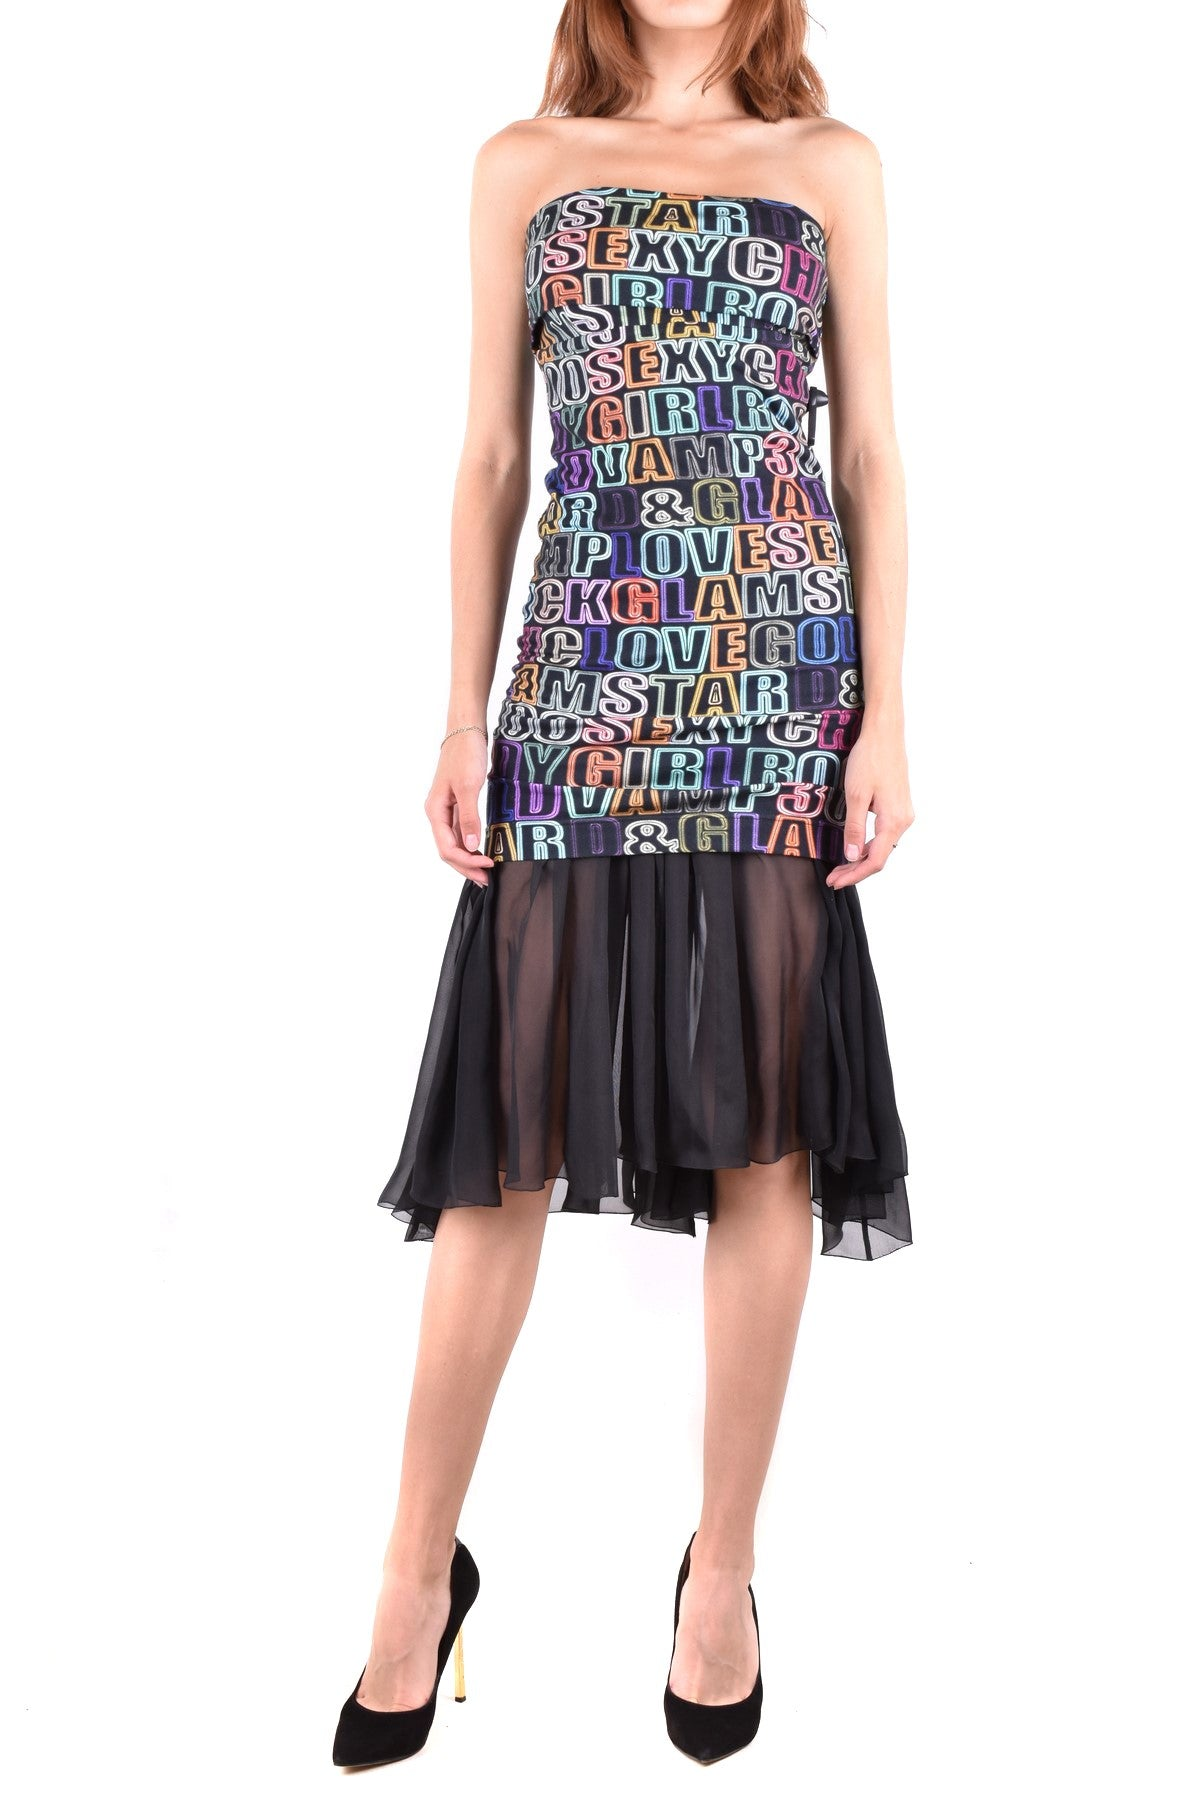 Dress Dolce & Gabbana-Women's Fashion - Women's Clothing - Dress-Product Details Manufacturer Part Number: Sd2326 Tsga7Year: 2020Composition: Cotton 69%, Elastane 6%, Silk 25%Size: ItGender: WomanMade In: ItalySeason: Spring / SummerMain Color: MulticolorClothing Type: TaglieurTerms: New With Label-Keyomi-Sook